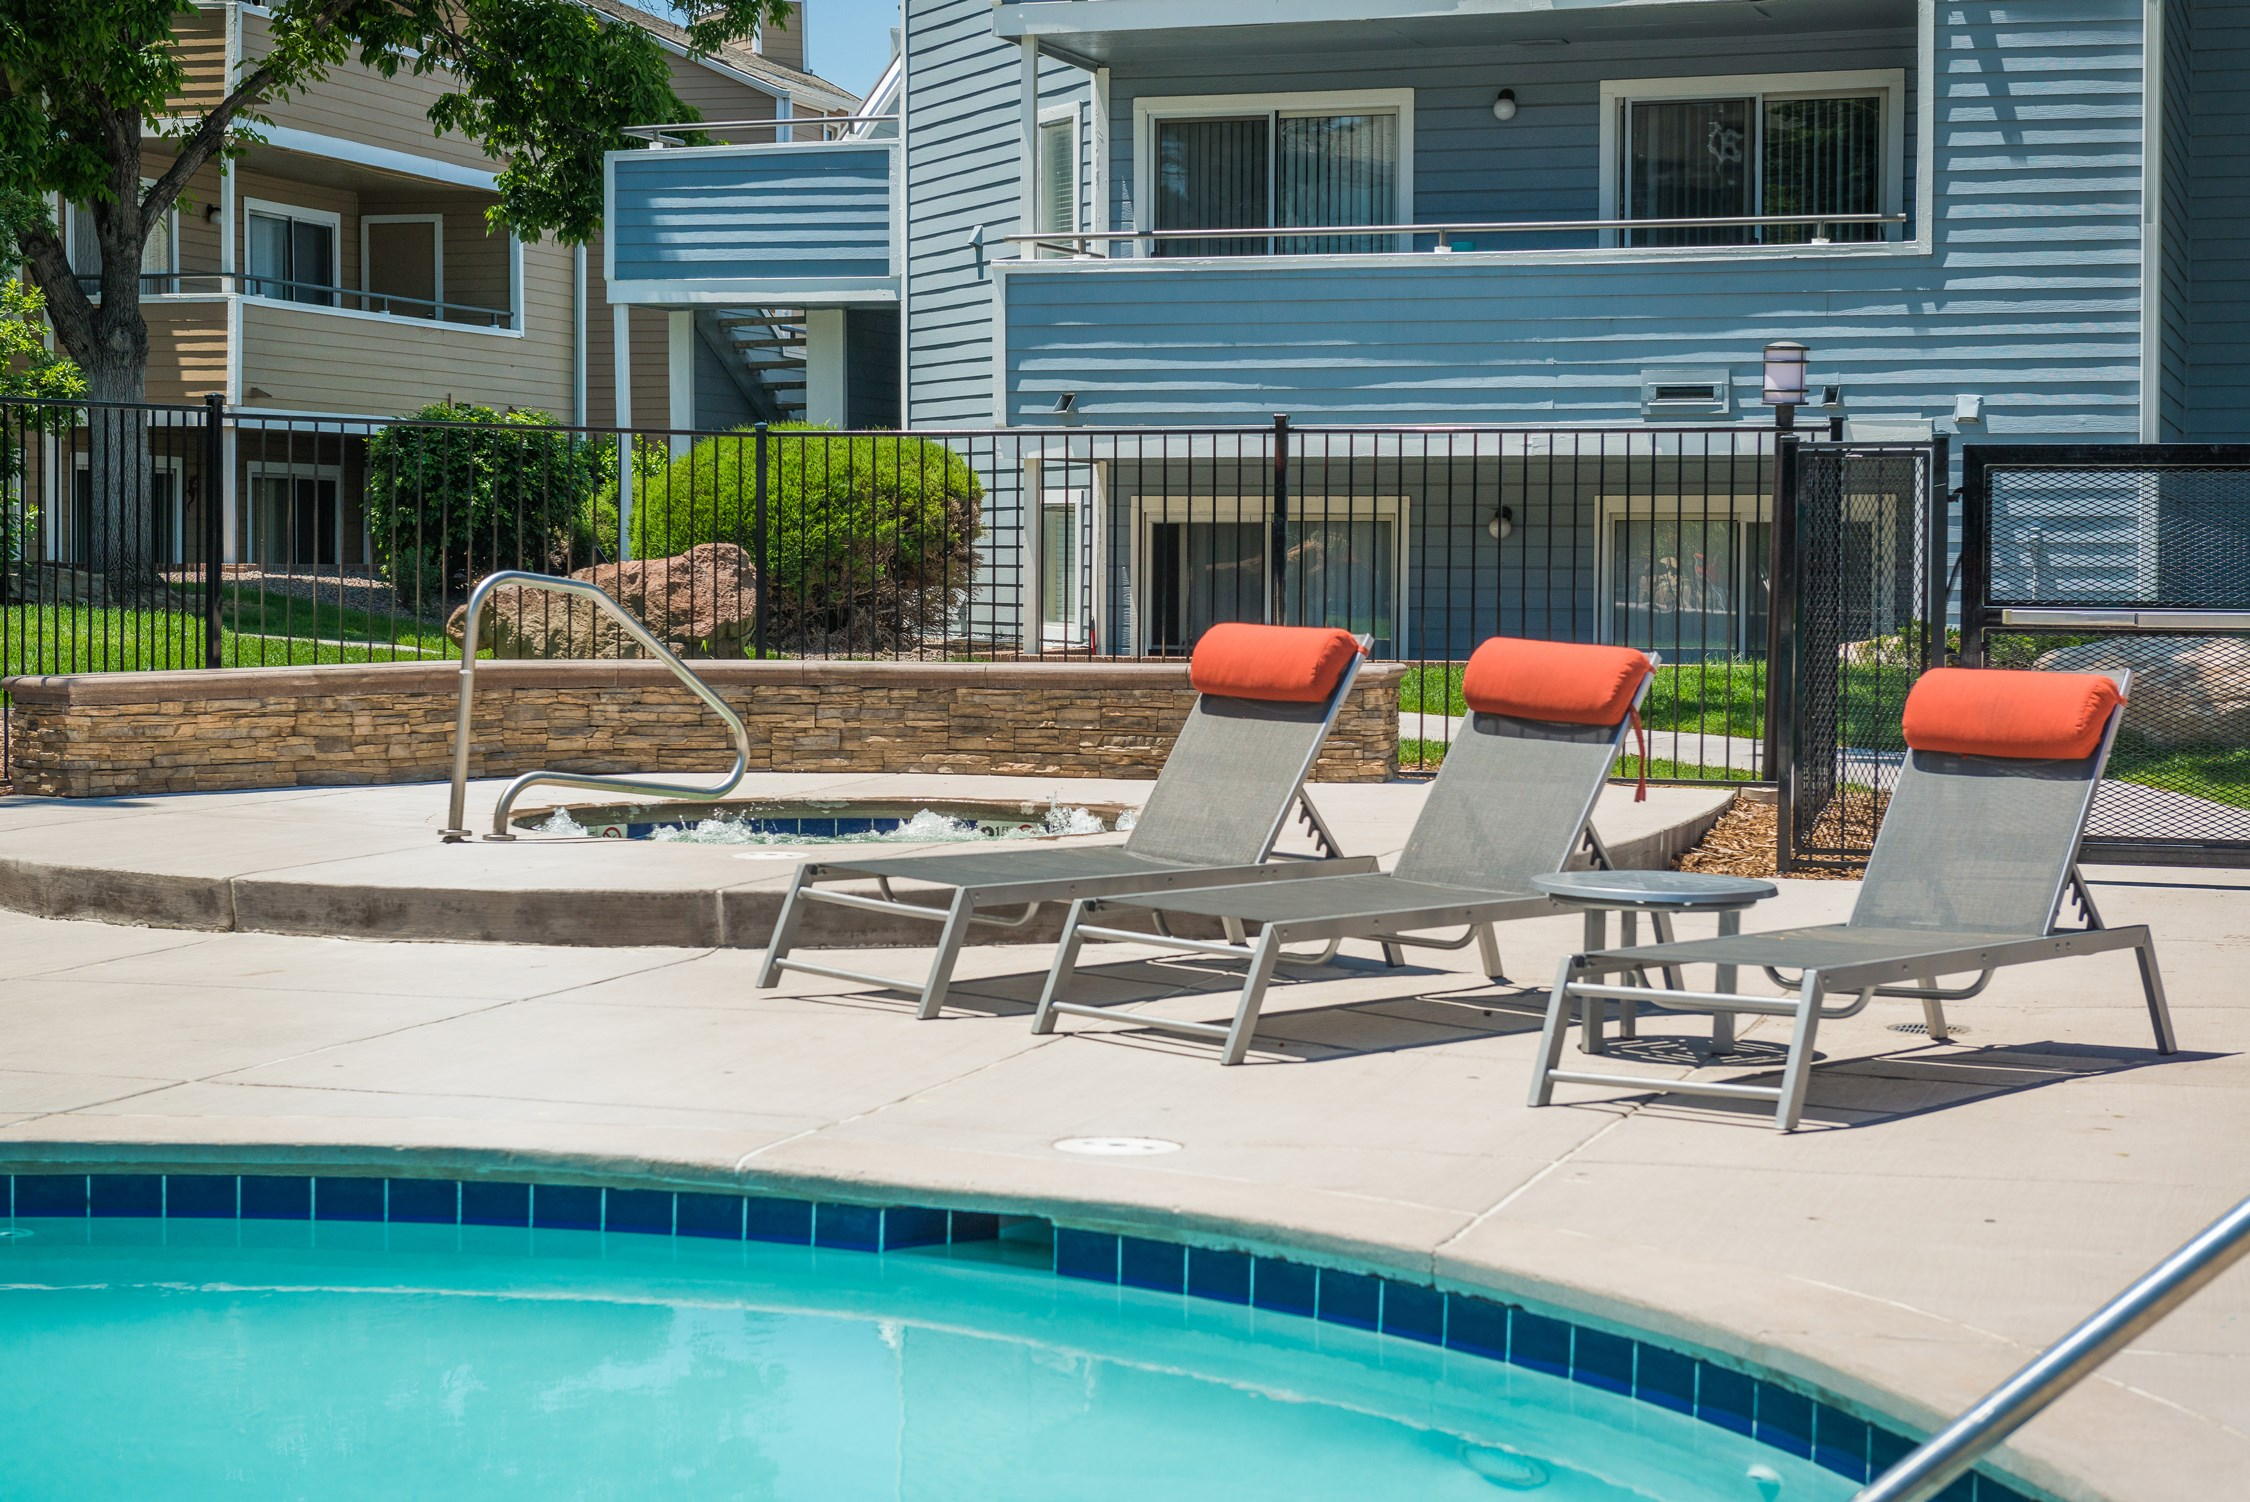 Swimming Pool at Conifer Creek Apartments in Aurora, CO